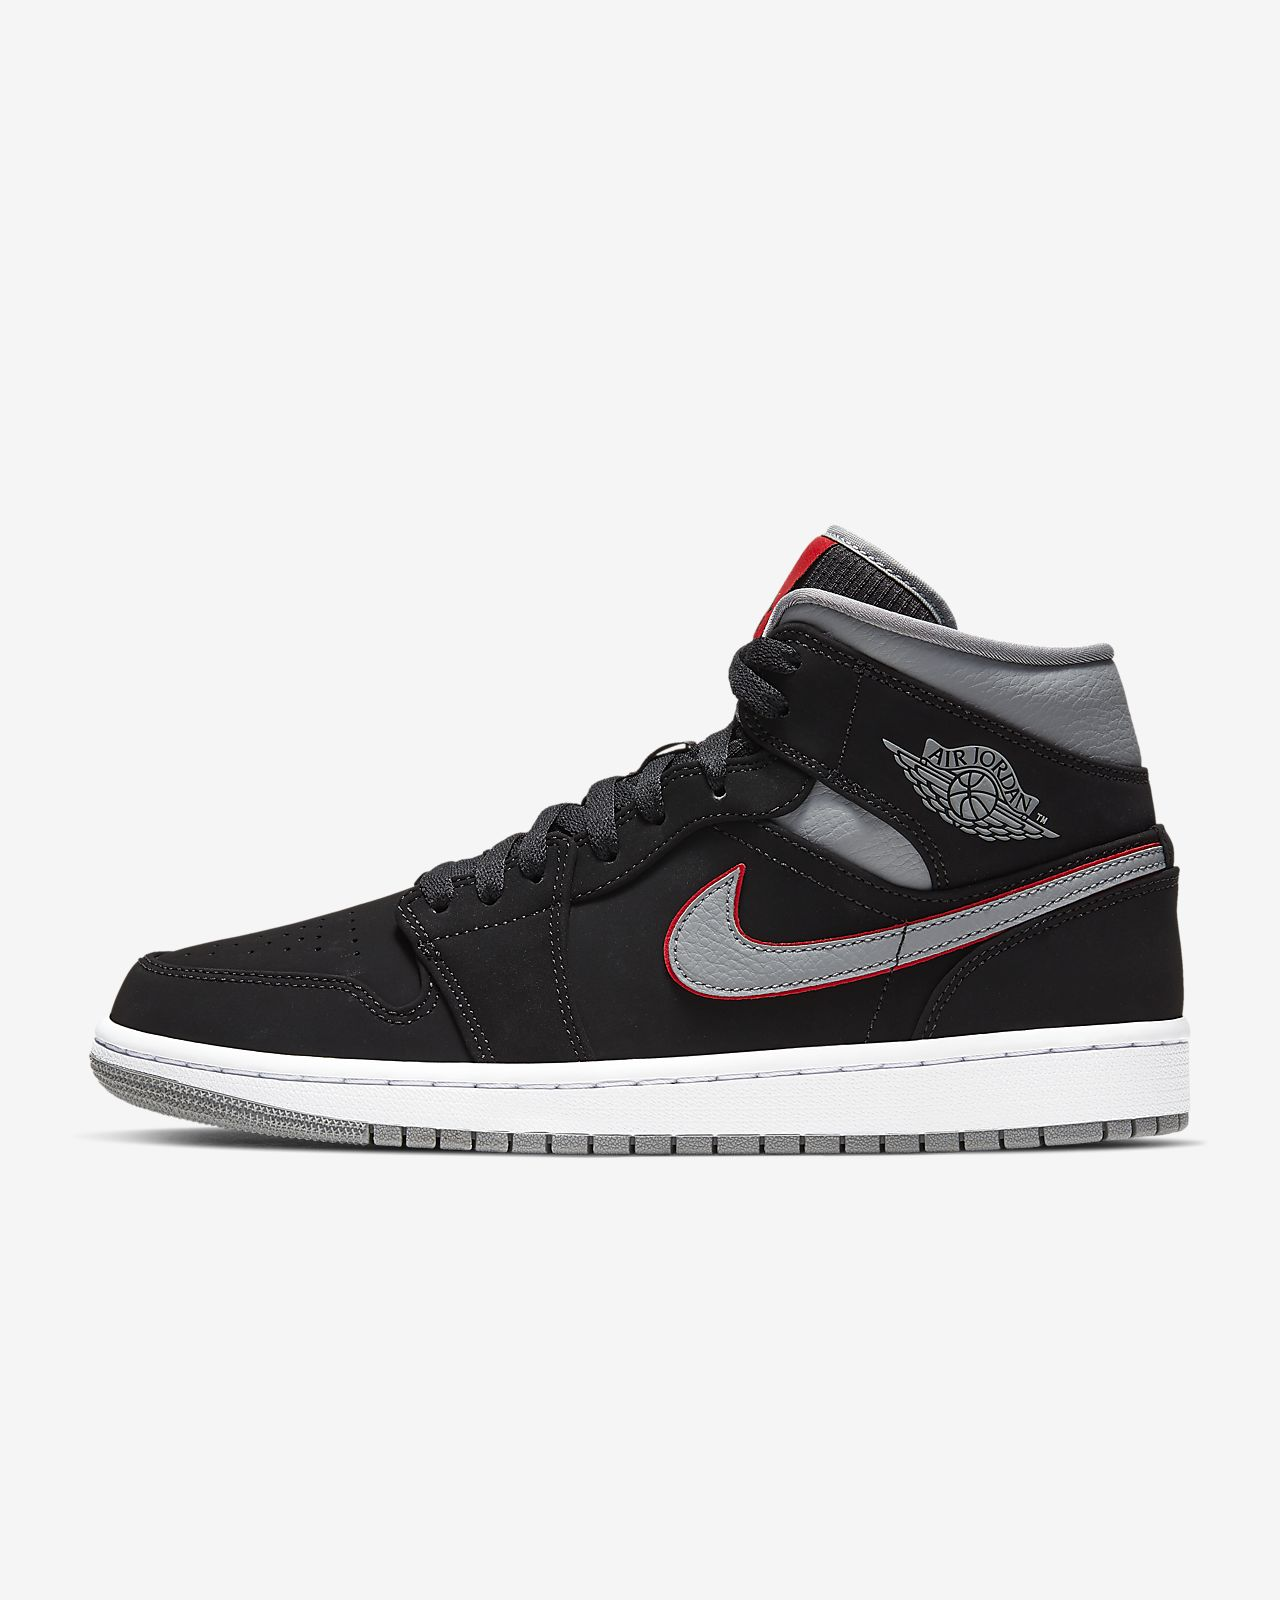 0038f995b8c7 Air Jordan 1 Mid Men s Shoe. Nike.com